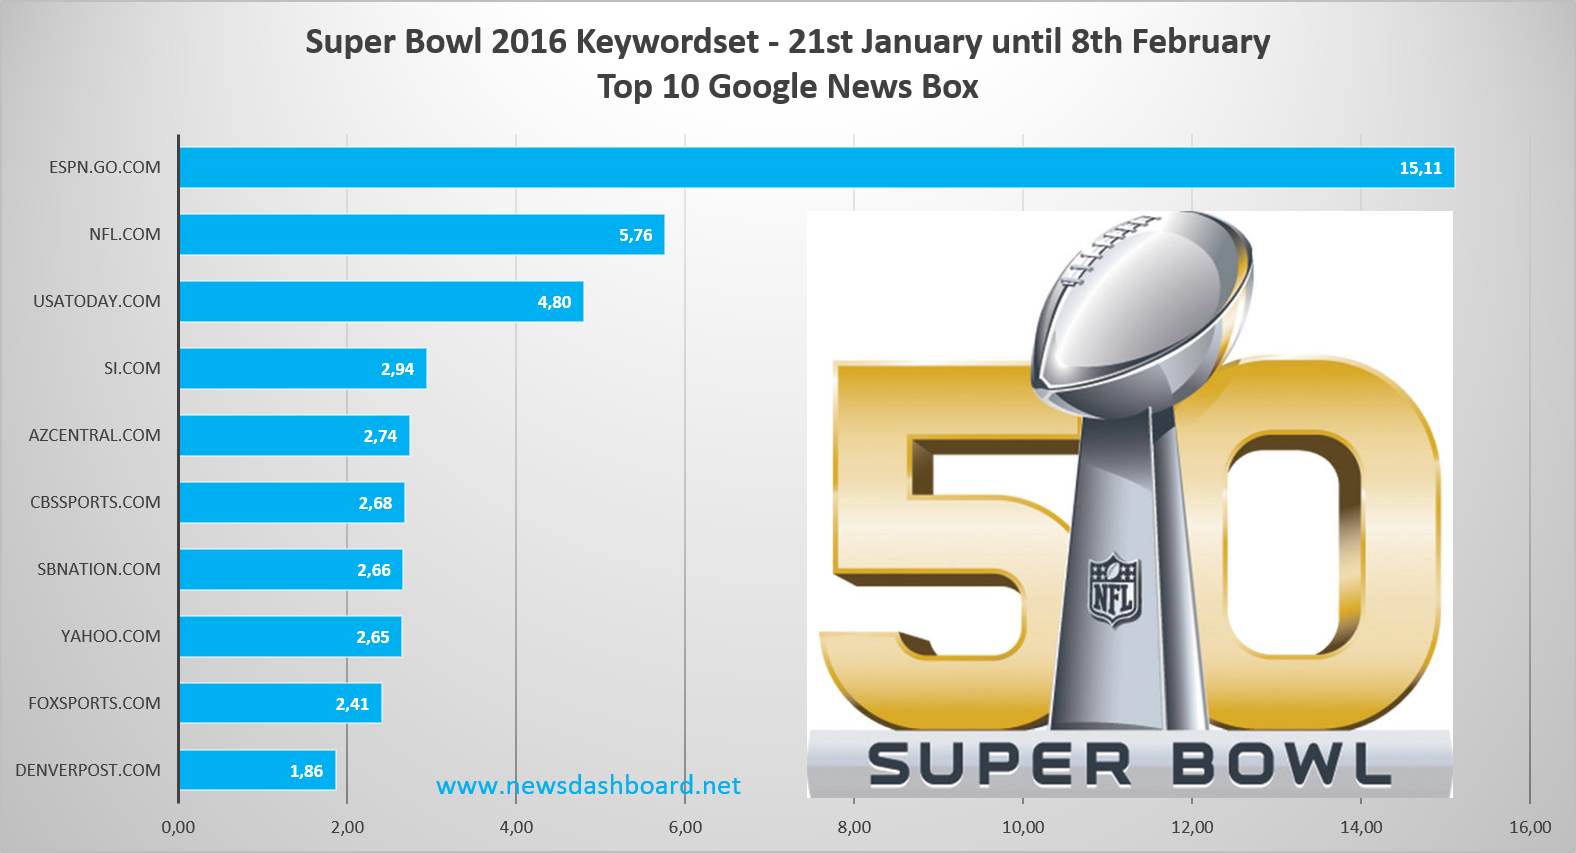 Espn.go.com was best in Google News Ranking as our Super Bowl keyword set was concerned.